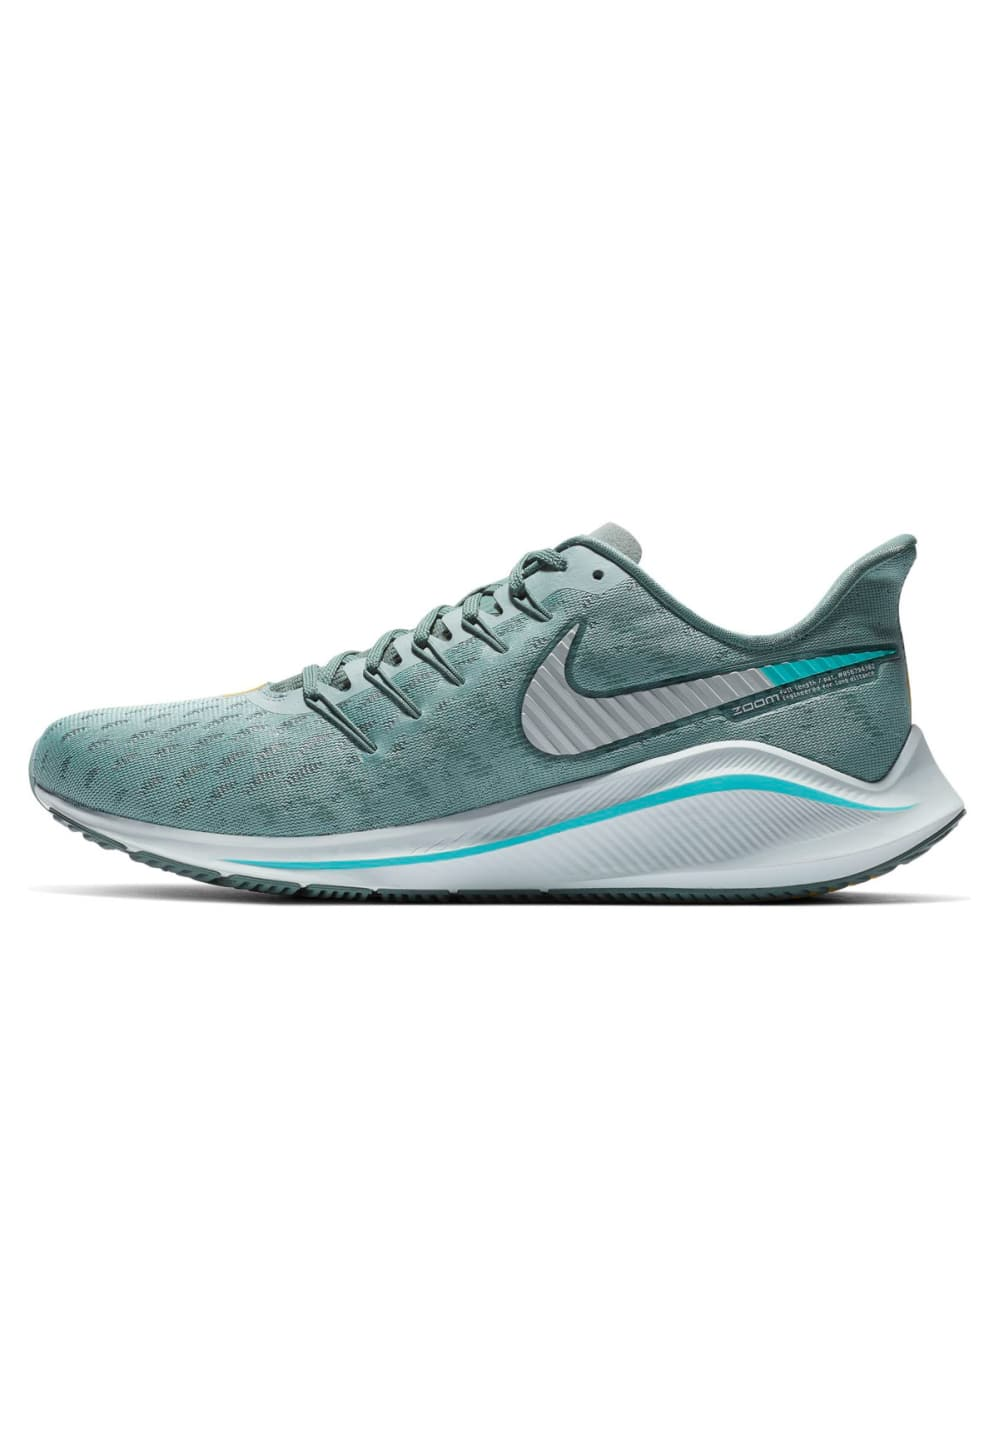 online store 535f2 c341f Nike Air Zoom Vomero 14 - Running shoes for Men - Grey